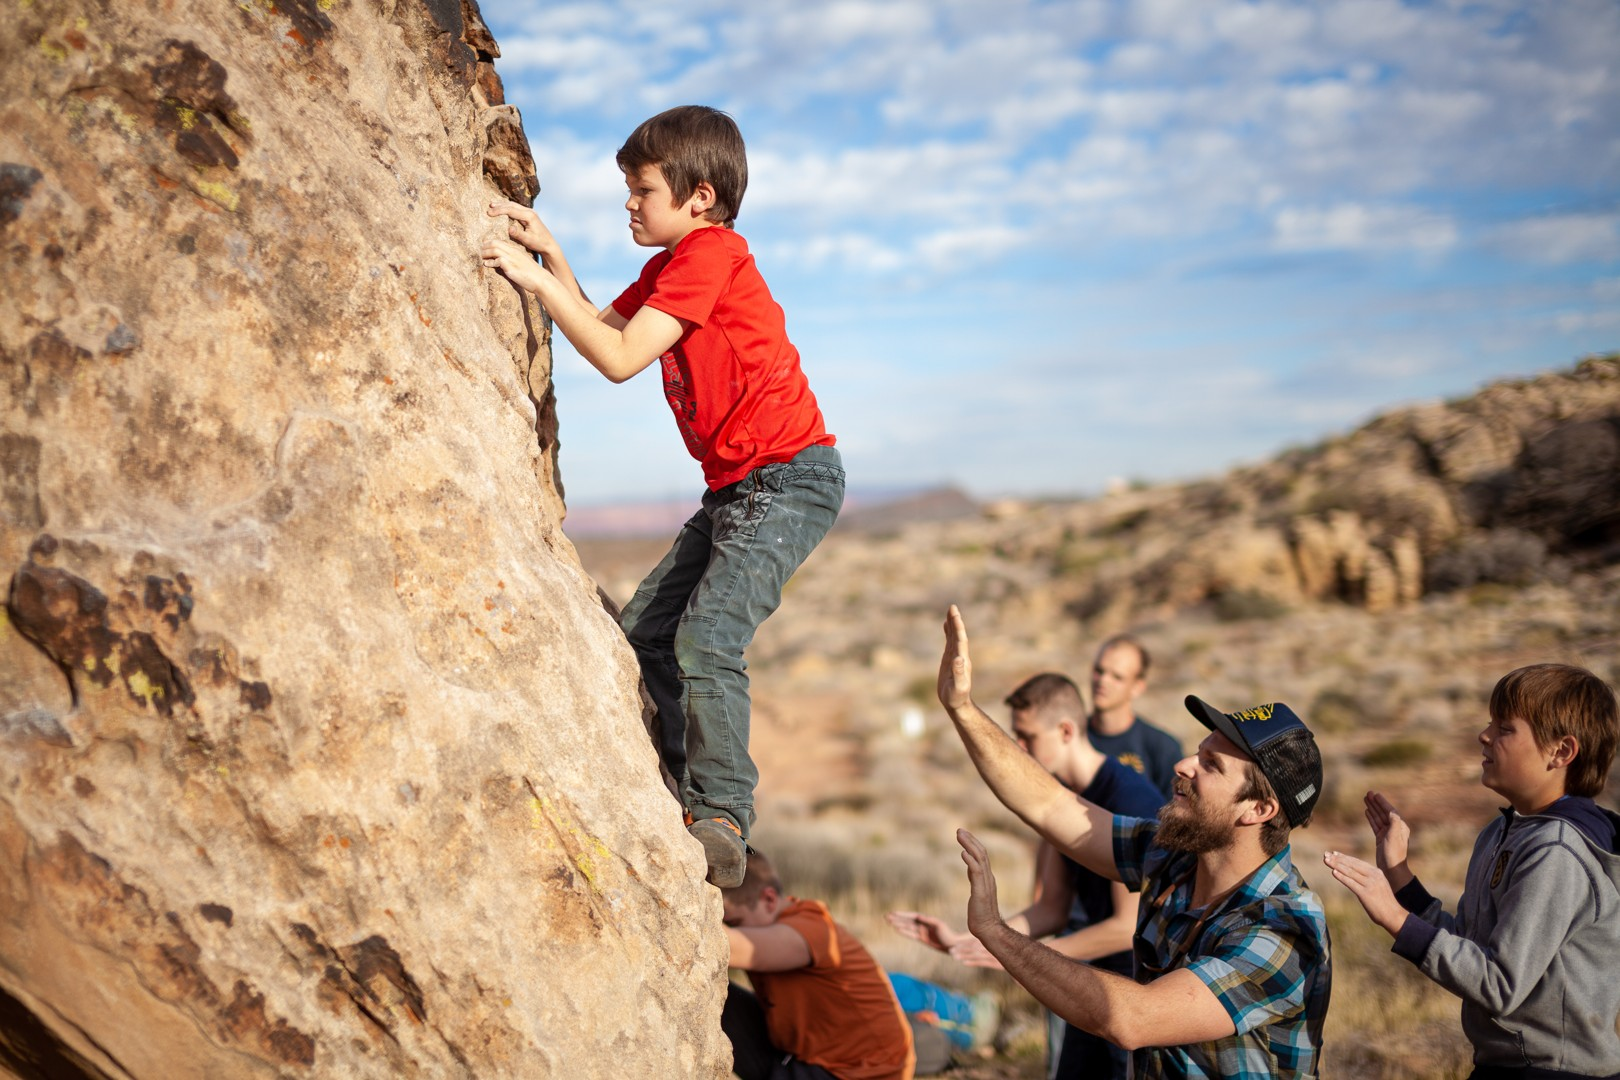 Summer Series: Youth Bouldering